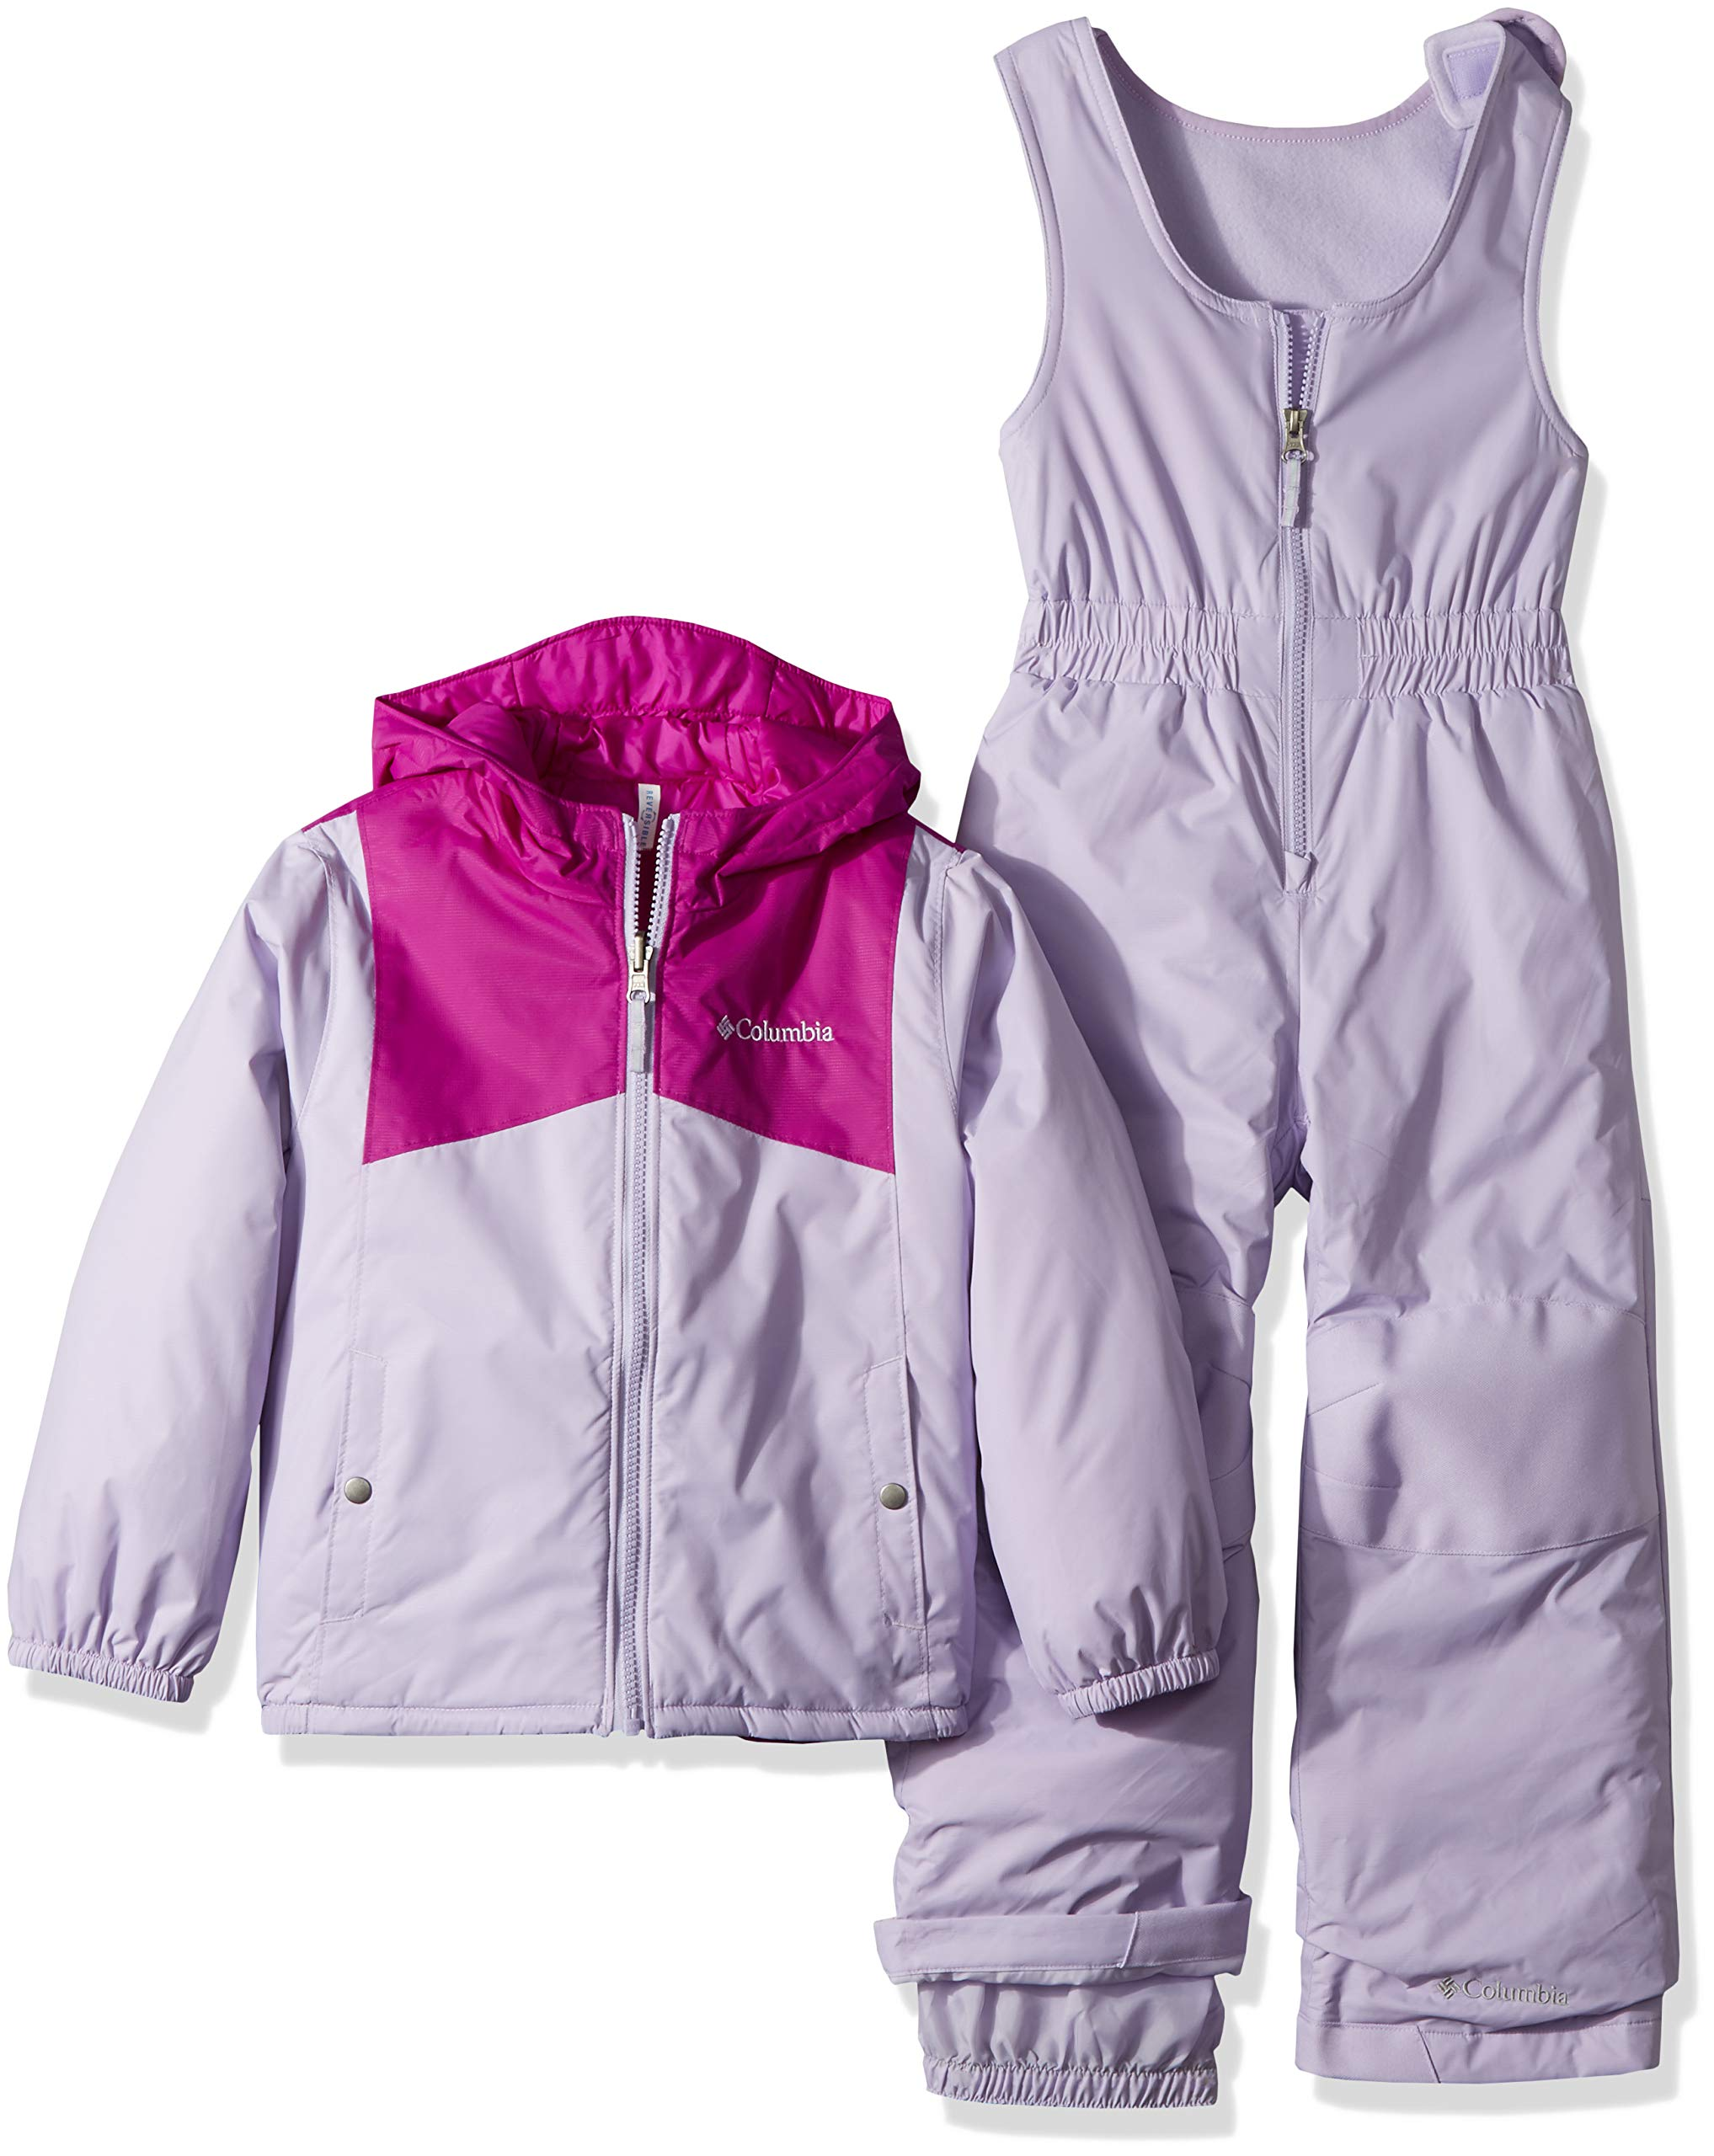 Columbia Kids & Baby Toddler Kids Double Flake Set, Bright Plum/Soft Violet, 2T